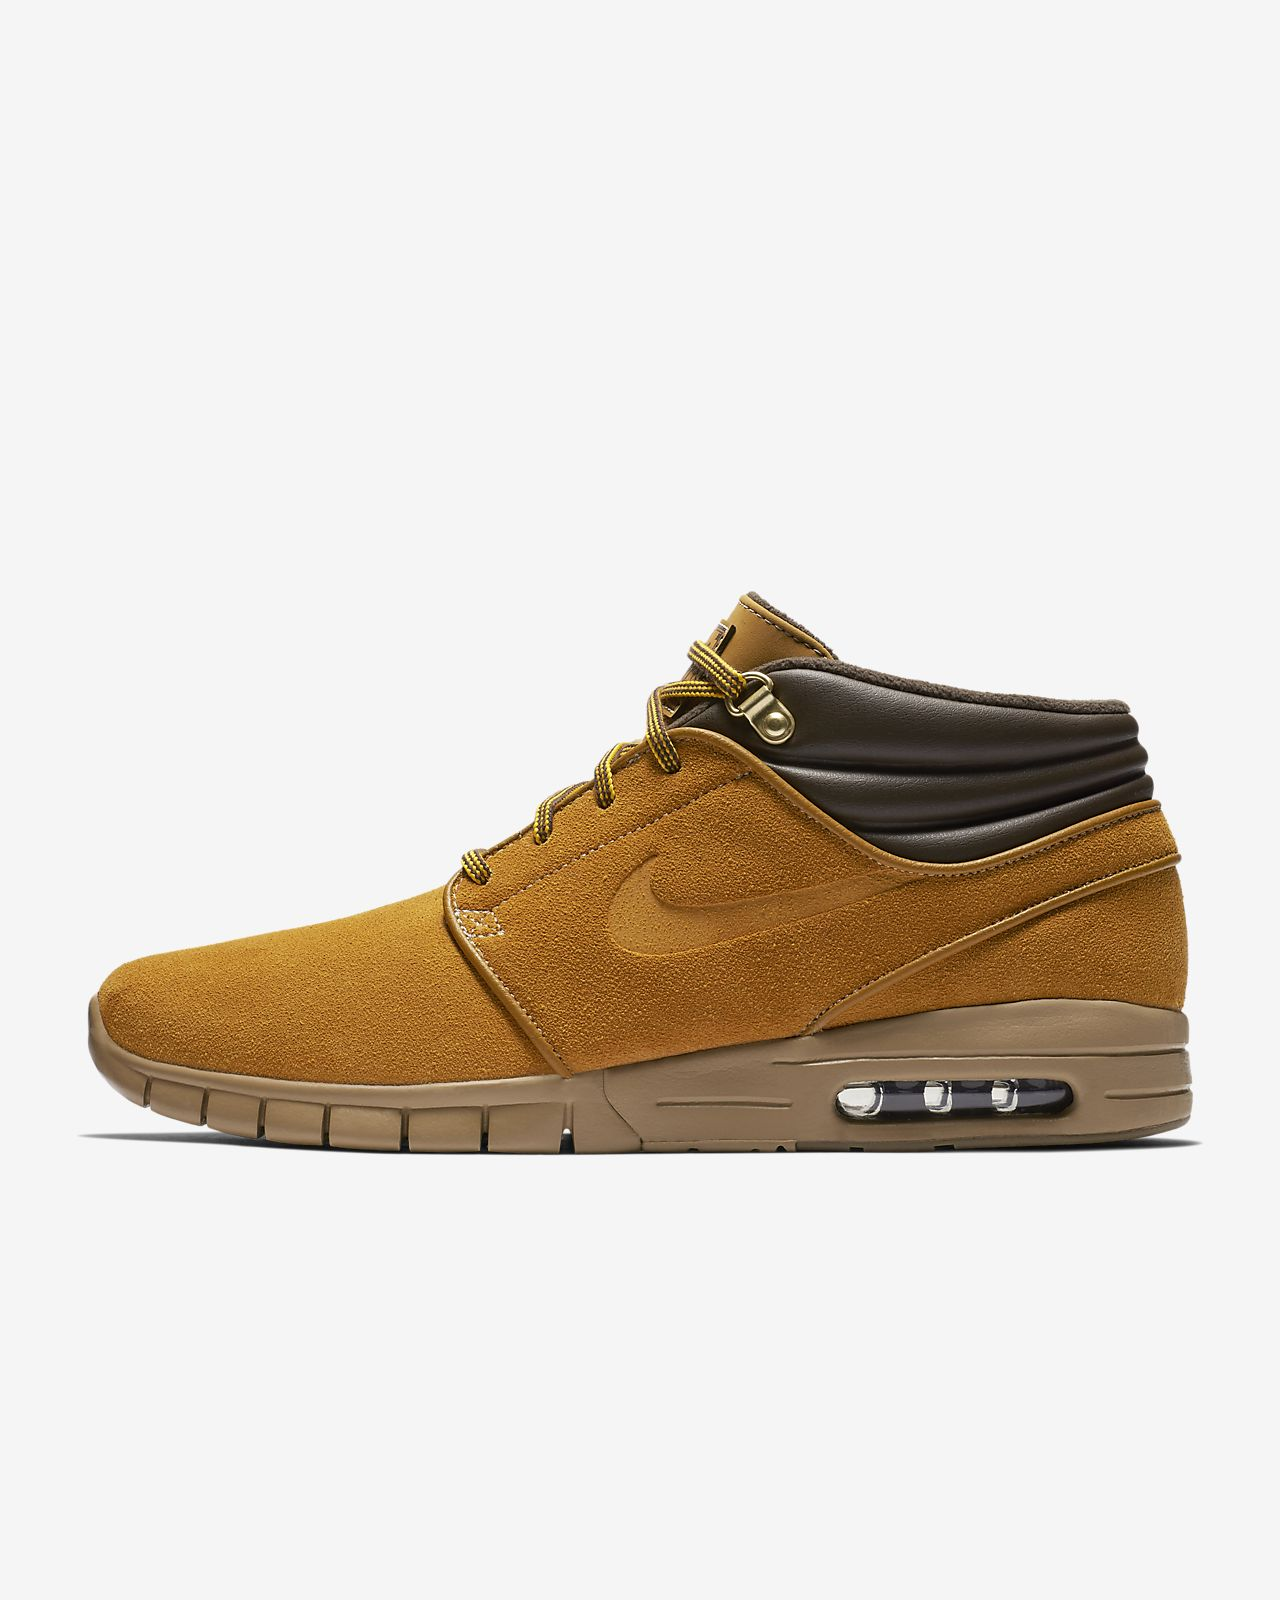 nike sb stefan janoski max mid premium men 39 s skate shoe. Black Bedroom Furniture Sets. Home Design Ideas